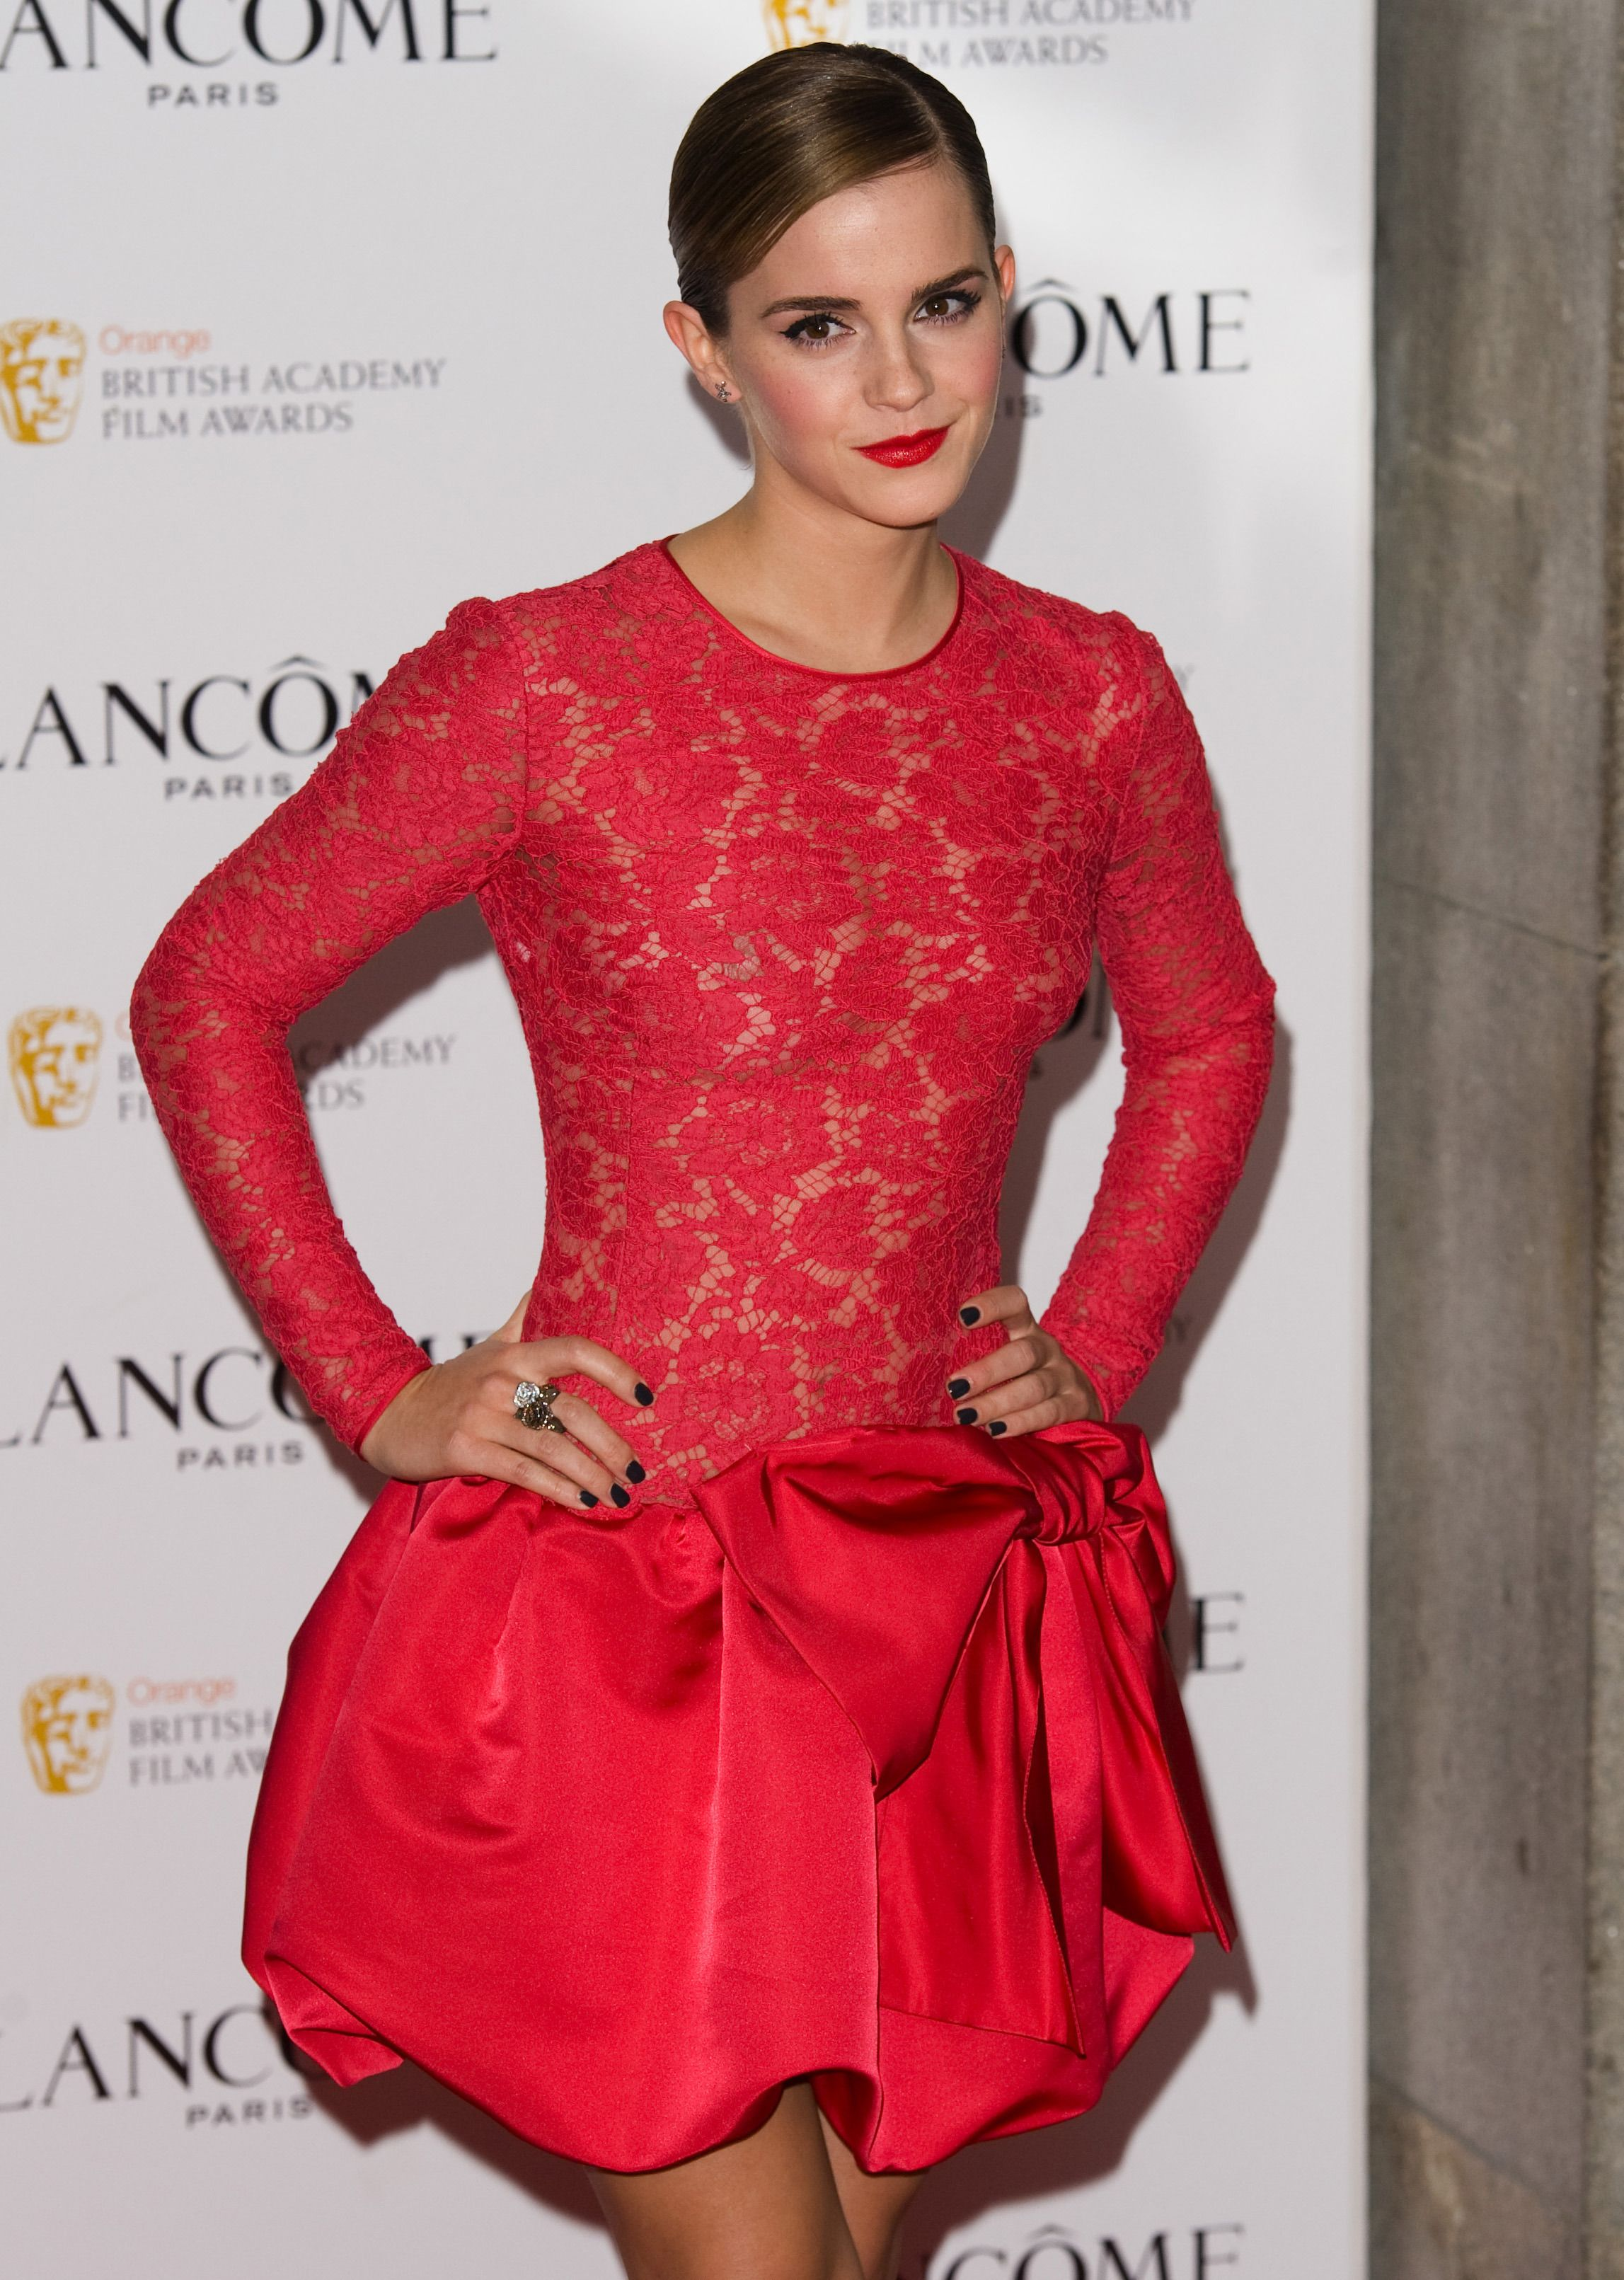 Emma Watson wears a red puffy skirt gown.